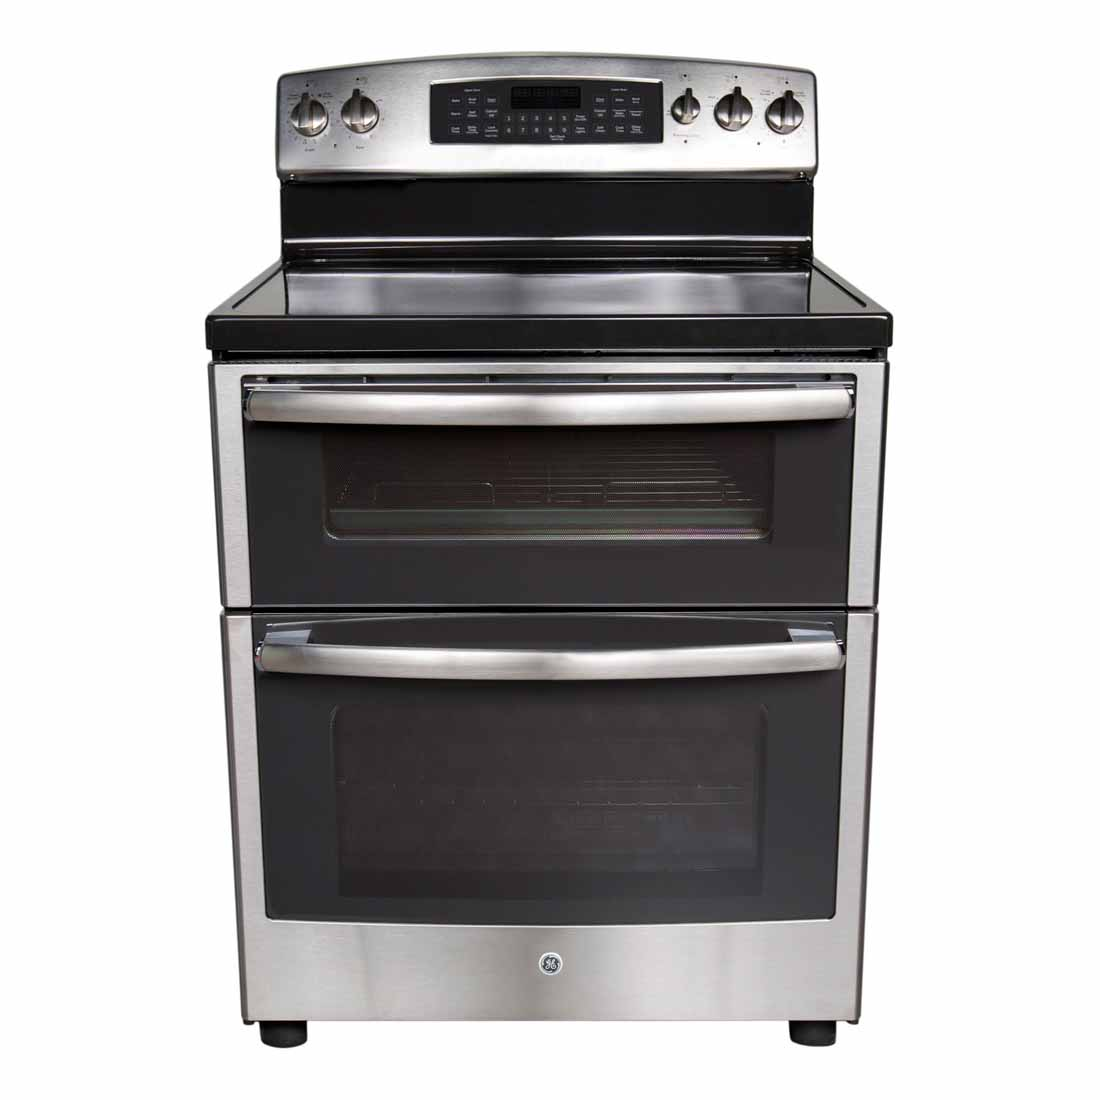 Uncategorized Kitchen Appliance Reviews ge 6 cu ft stainless double oven range pb955sfss review